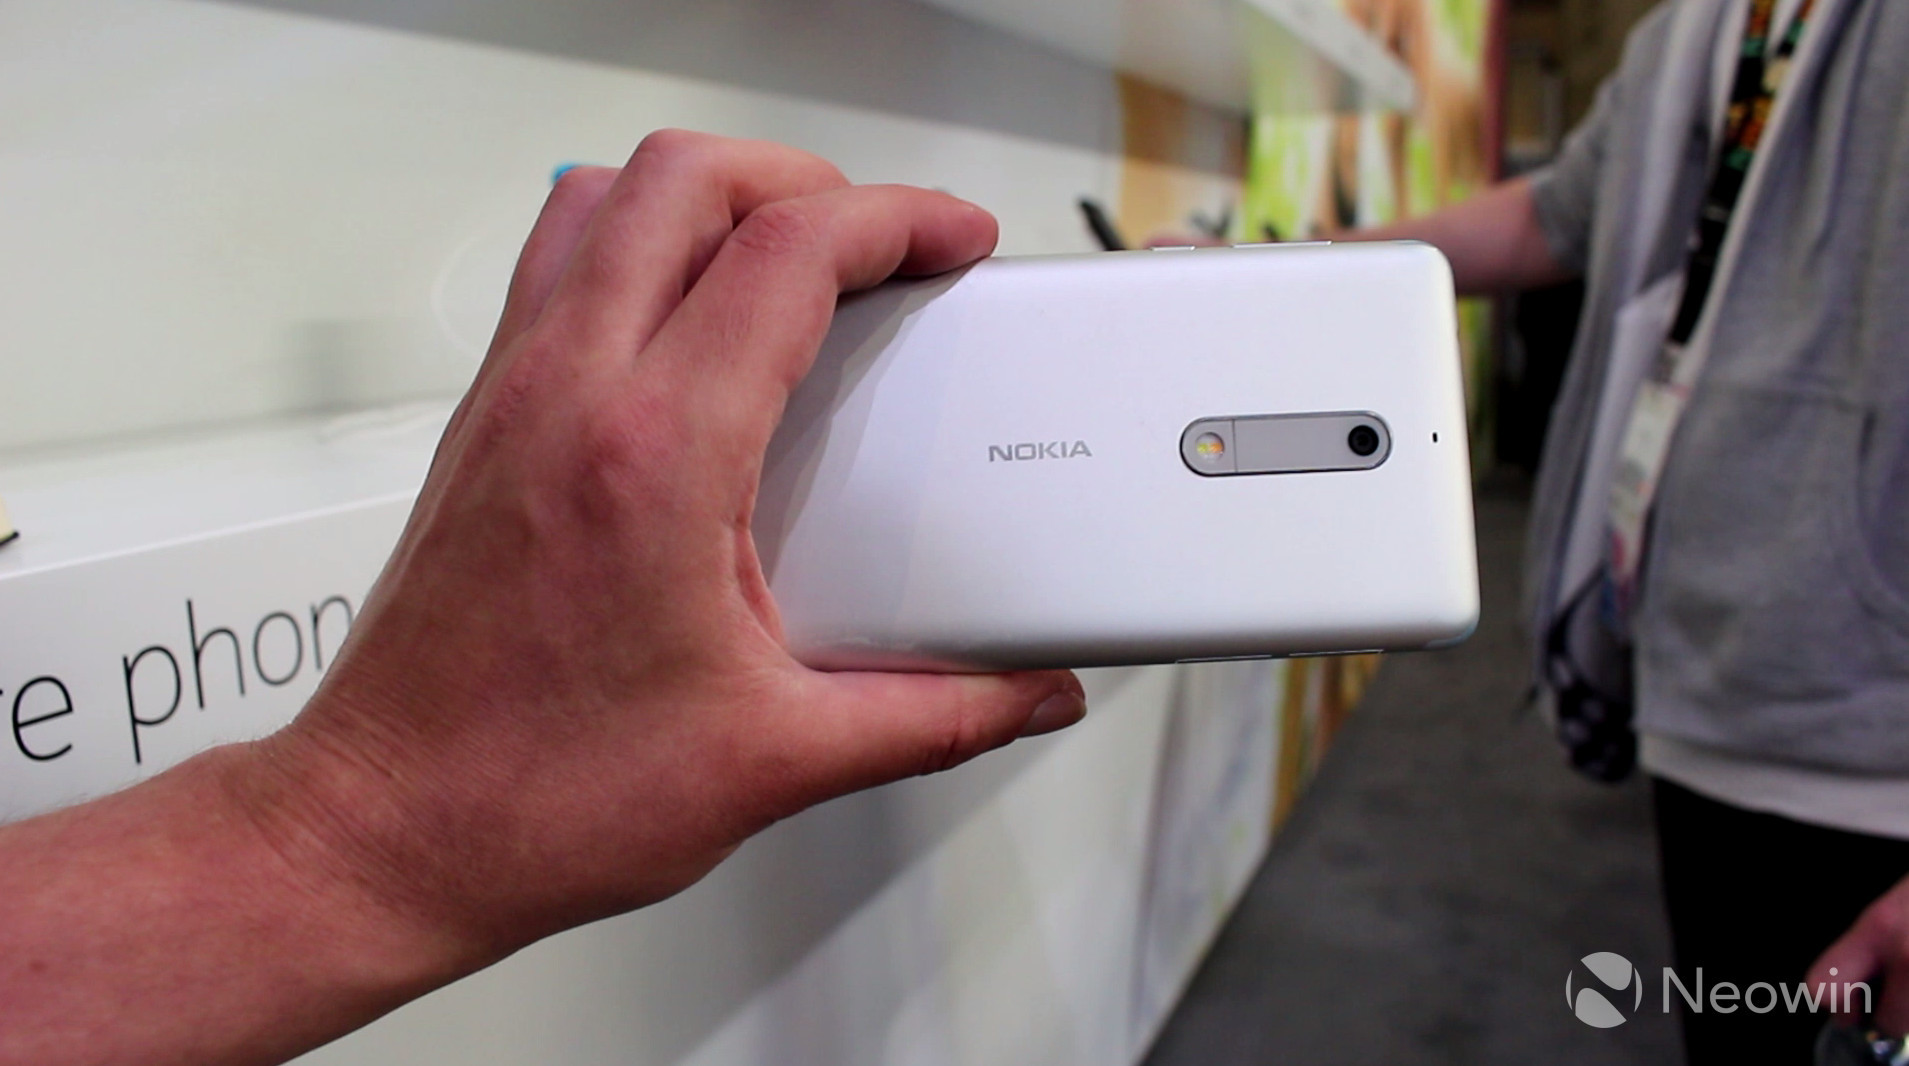 HMD Global commits to Android O on its Nokia handsets - Neowin